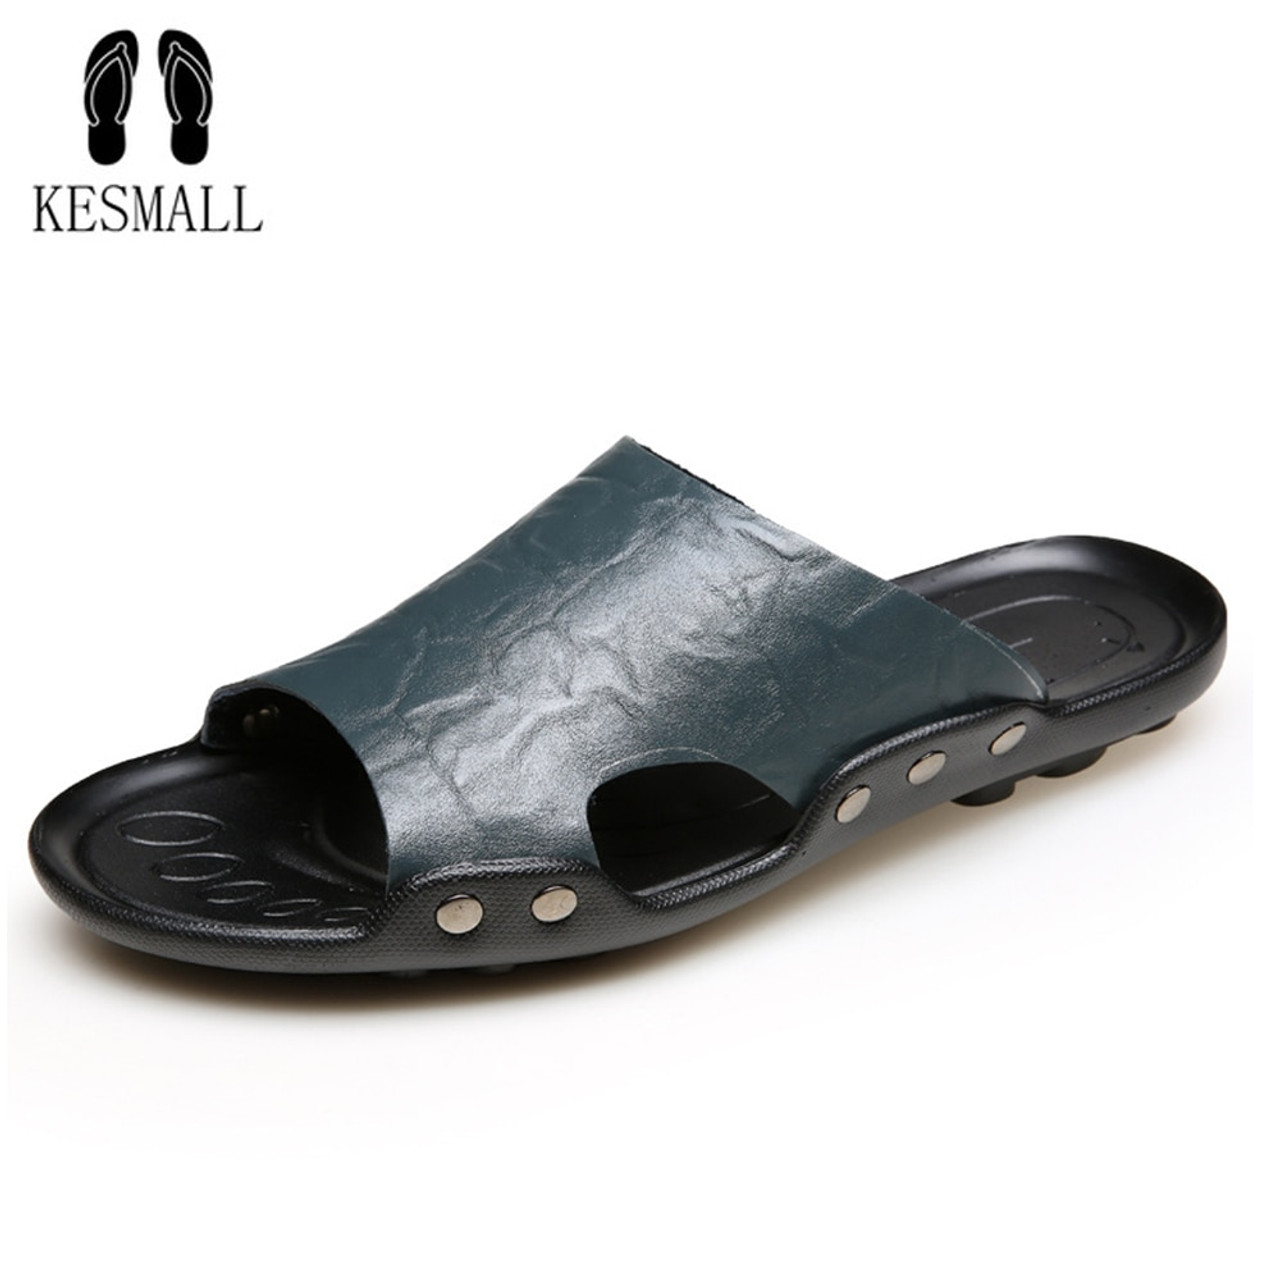 d8e457853 KESMALL 2018 New Men s Flip Flops Genuine Leather Slippers Summer Fashion  Beach Slippers Sandals Shoes For ...